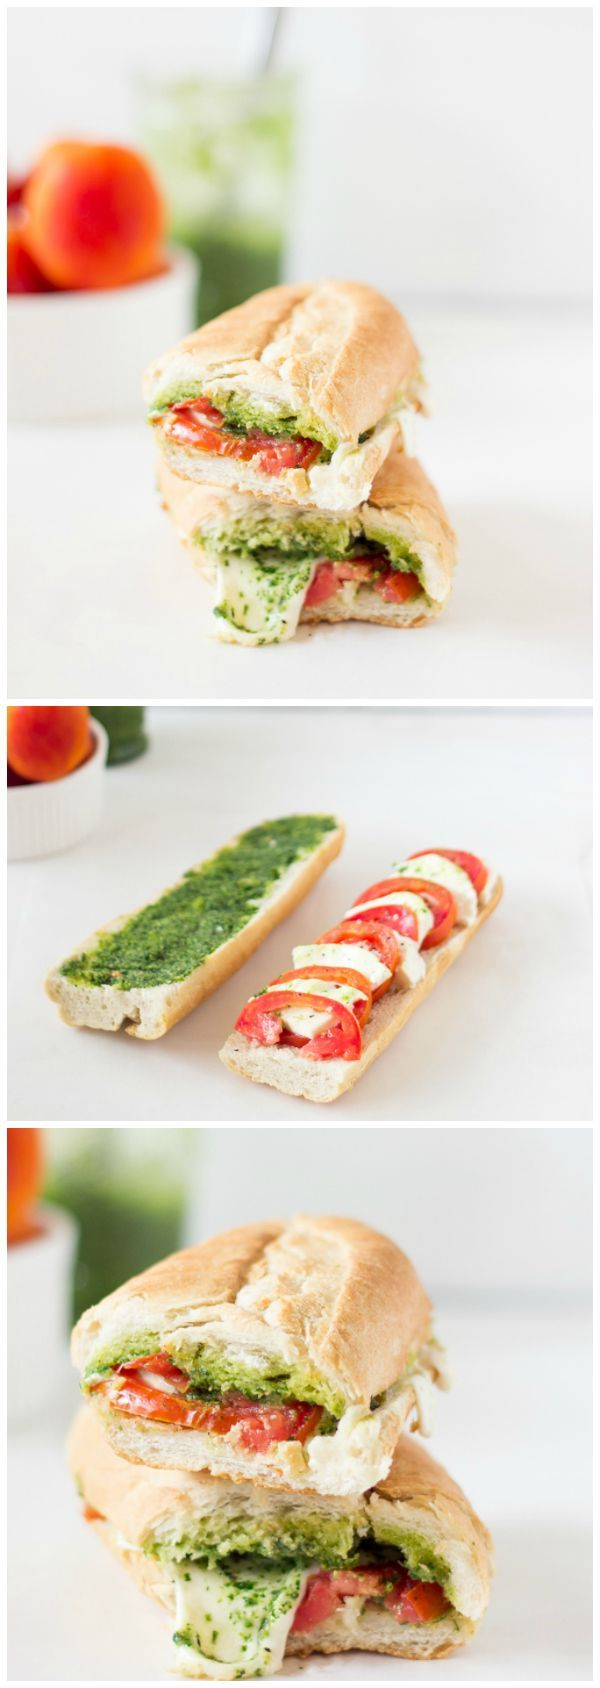 DROOLING -- Toasted Caprese Sandwich with Melted Mozzarella Creamy Pesto #comfort #picnic #appetizer